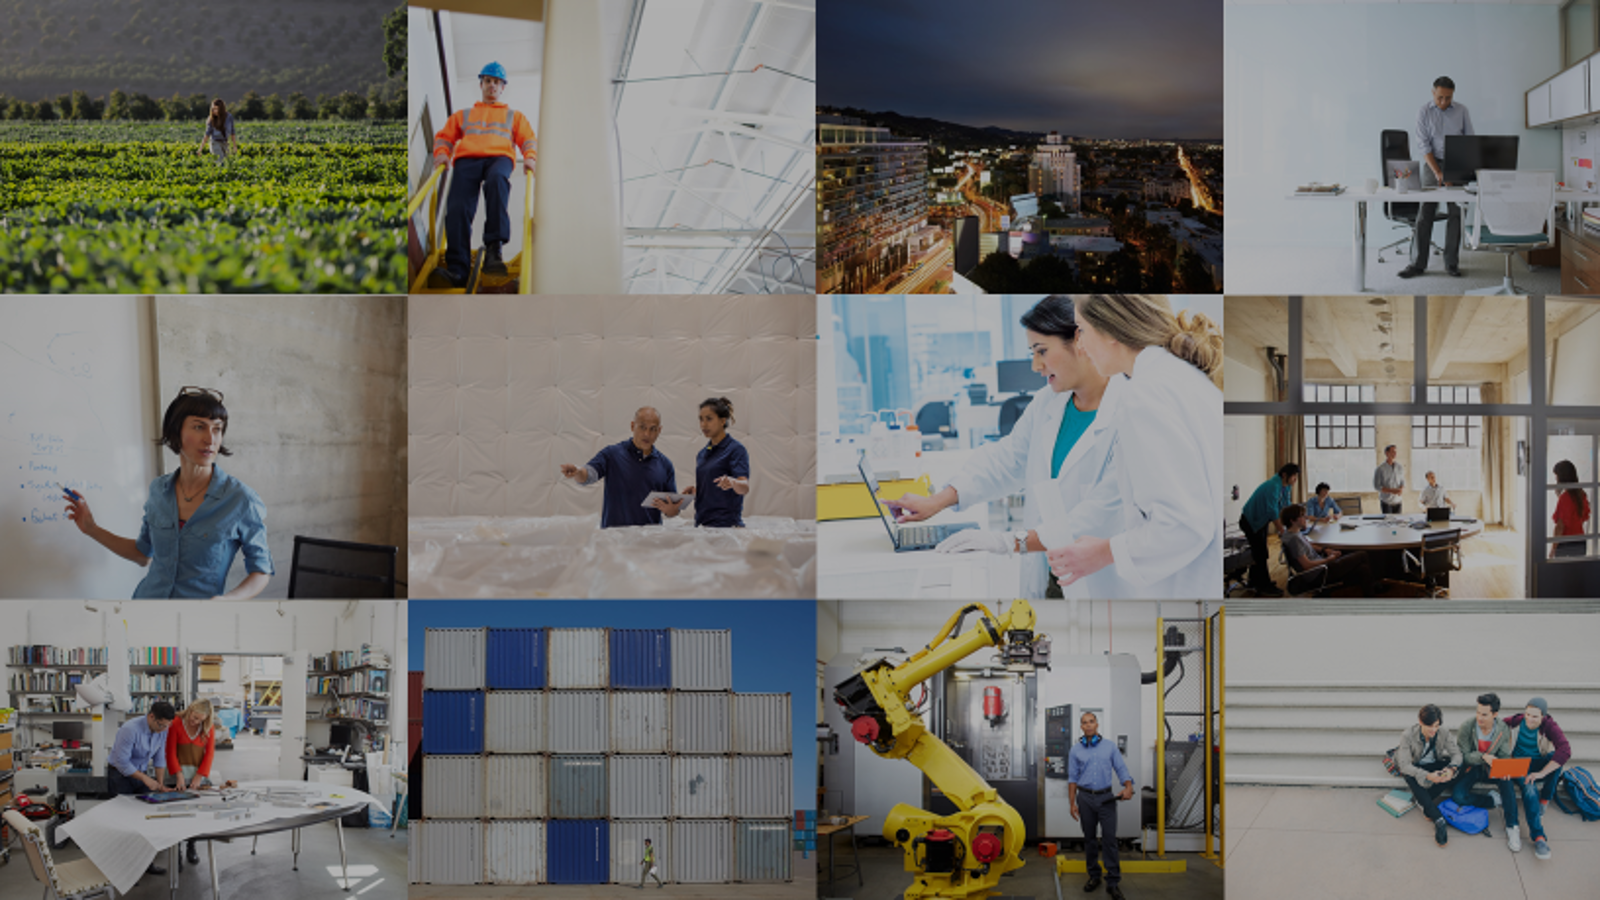 Montage of images of people working in various industries